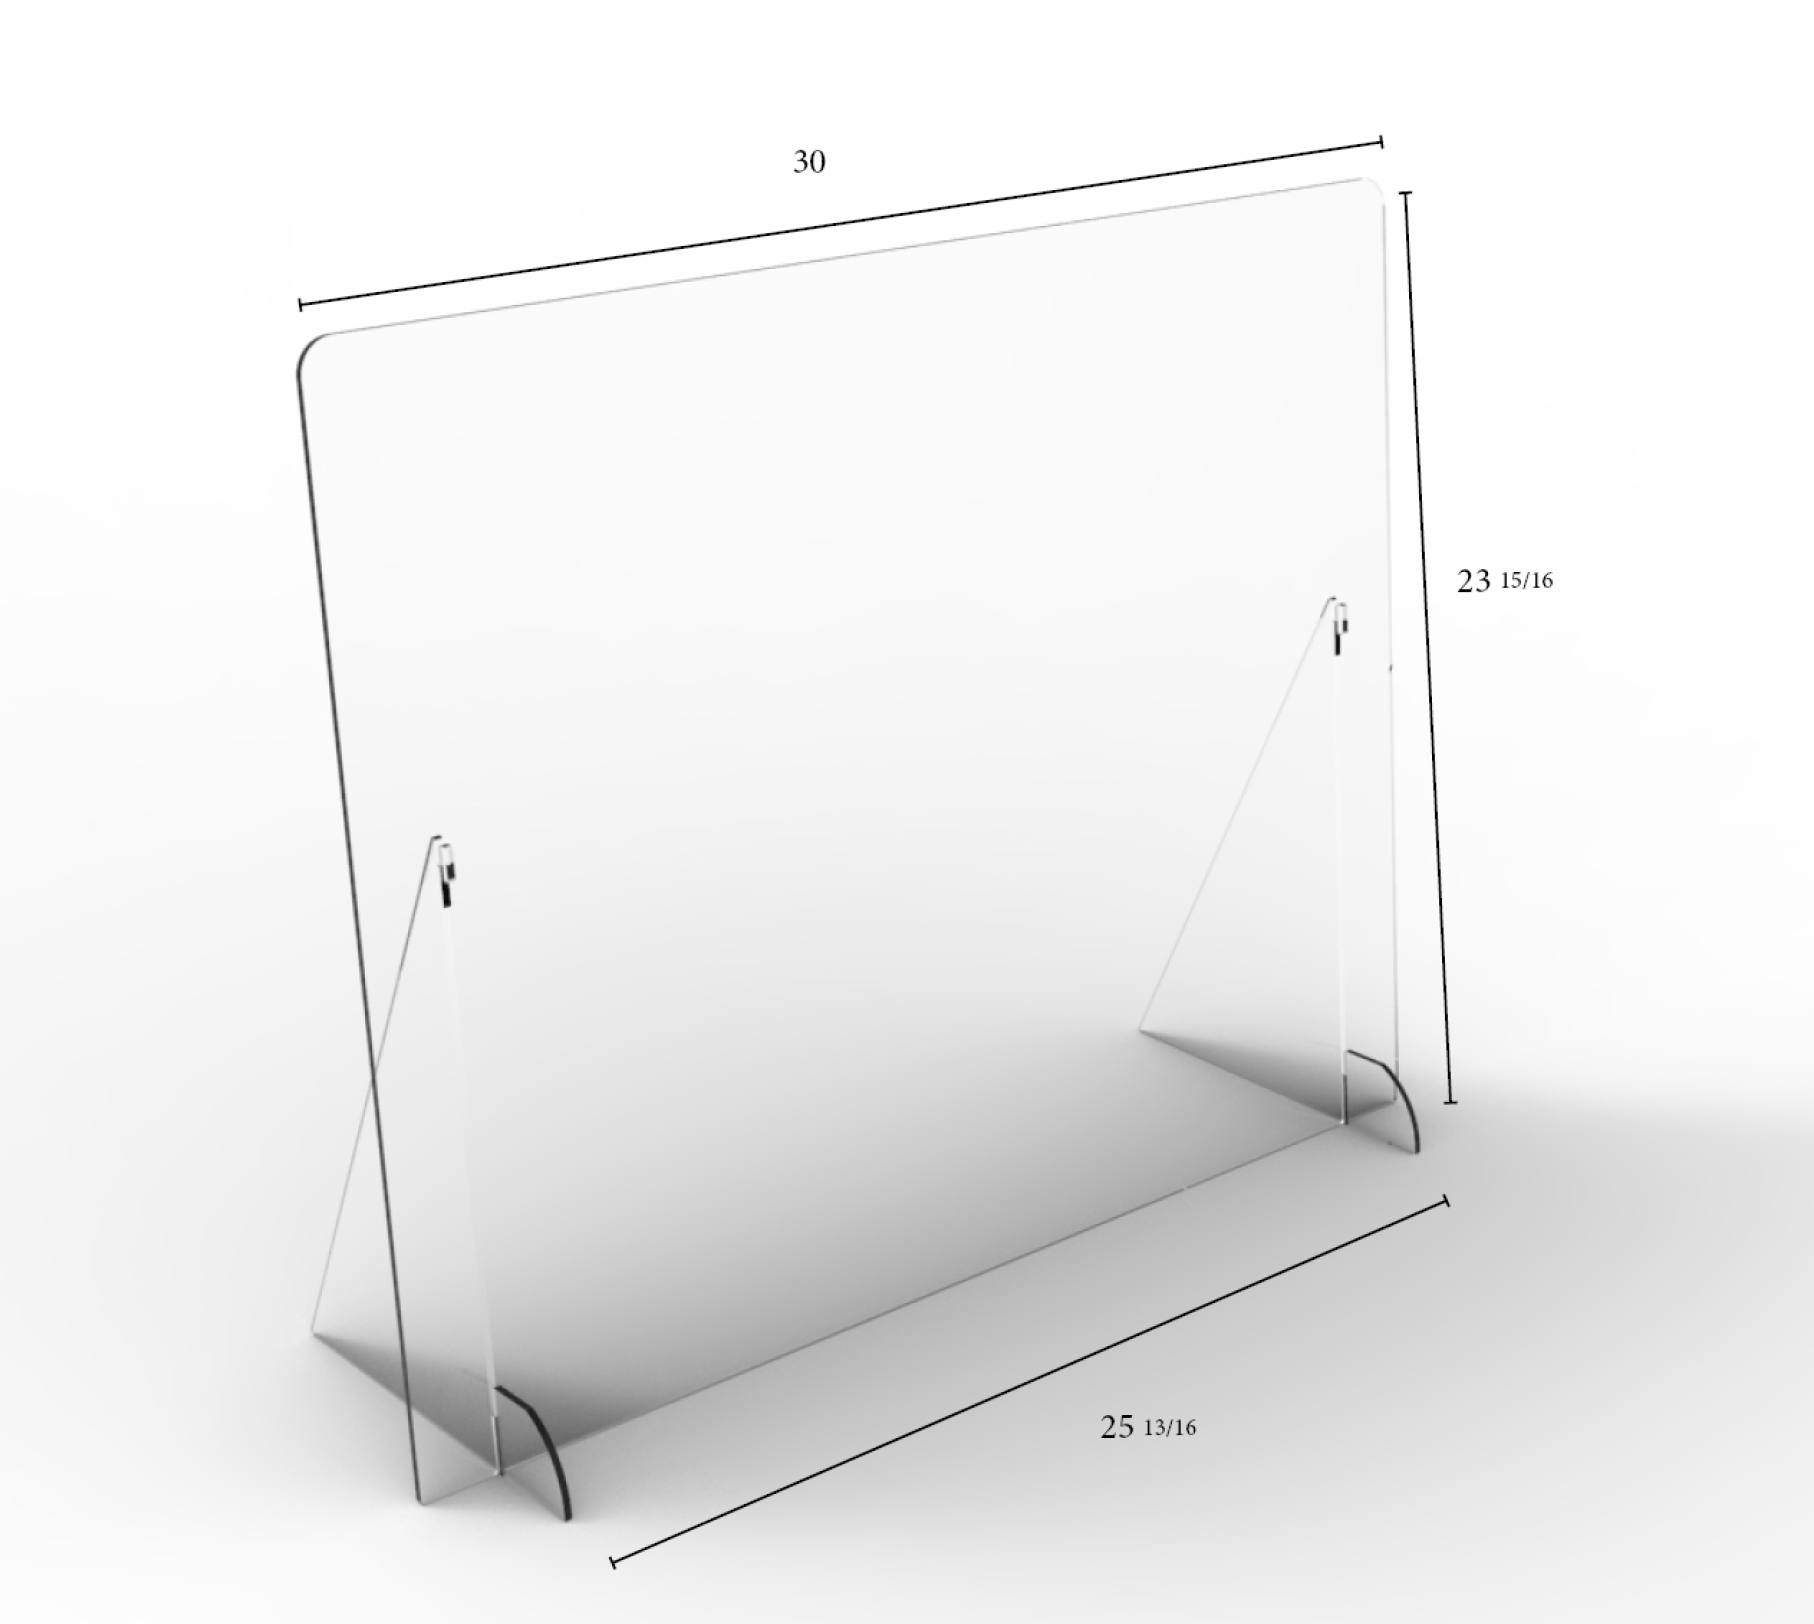 "Solid Angled Clear Protective Shield - 30"" W x 24"" H 